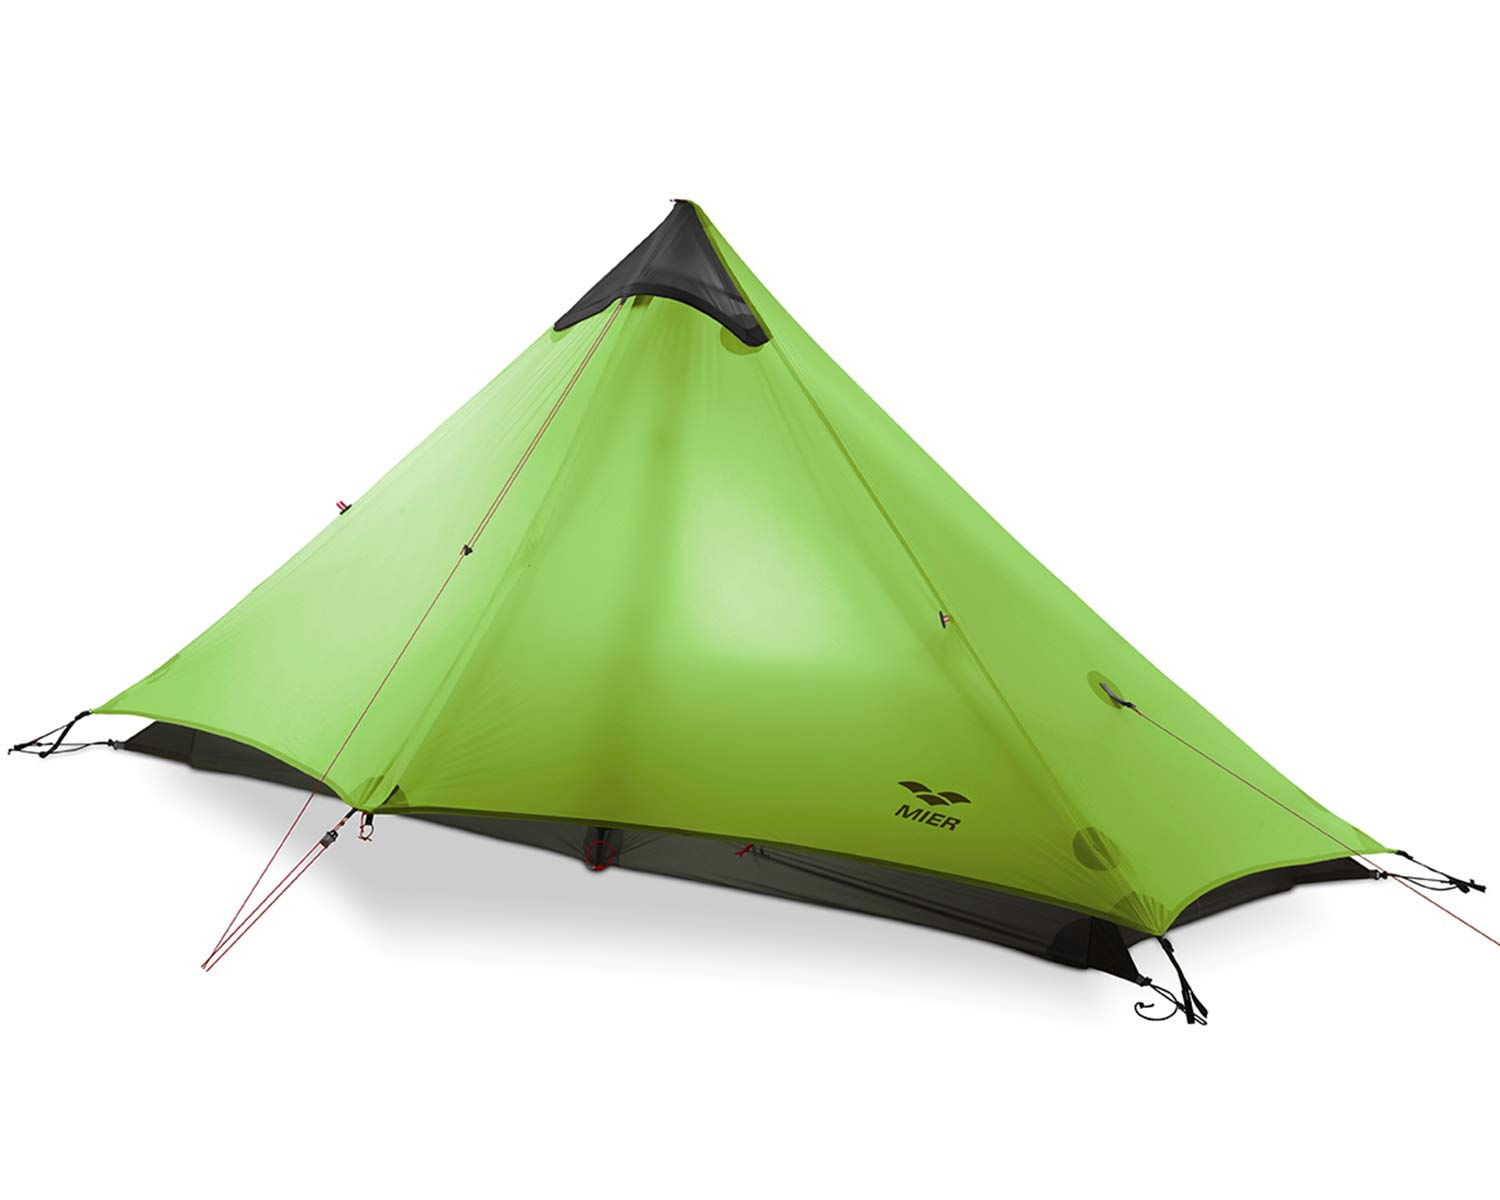 MIER Ultralight Tent 3-Season Backpacking Tent for 1-Person or 2-Person Camping, Trekking, Kayaking, Climbing, Hiking (Trekking Pole is NOT Included), Green, 1-Person by MIER